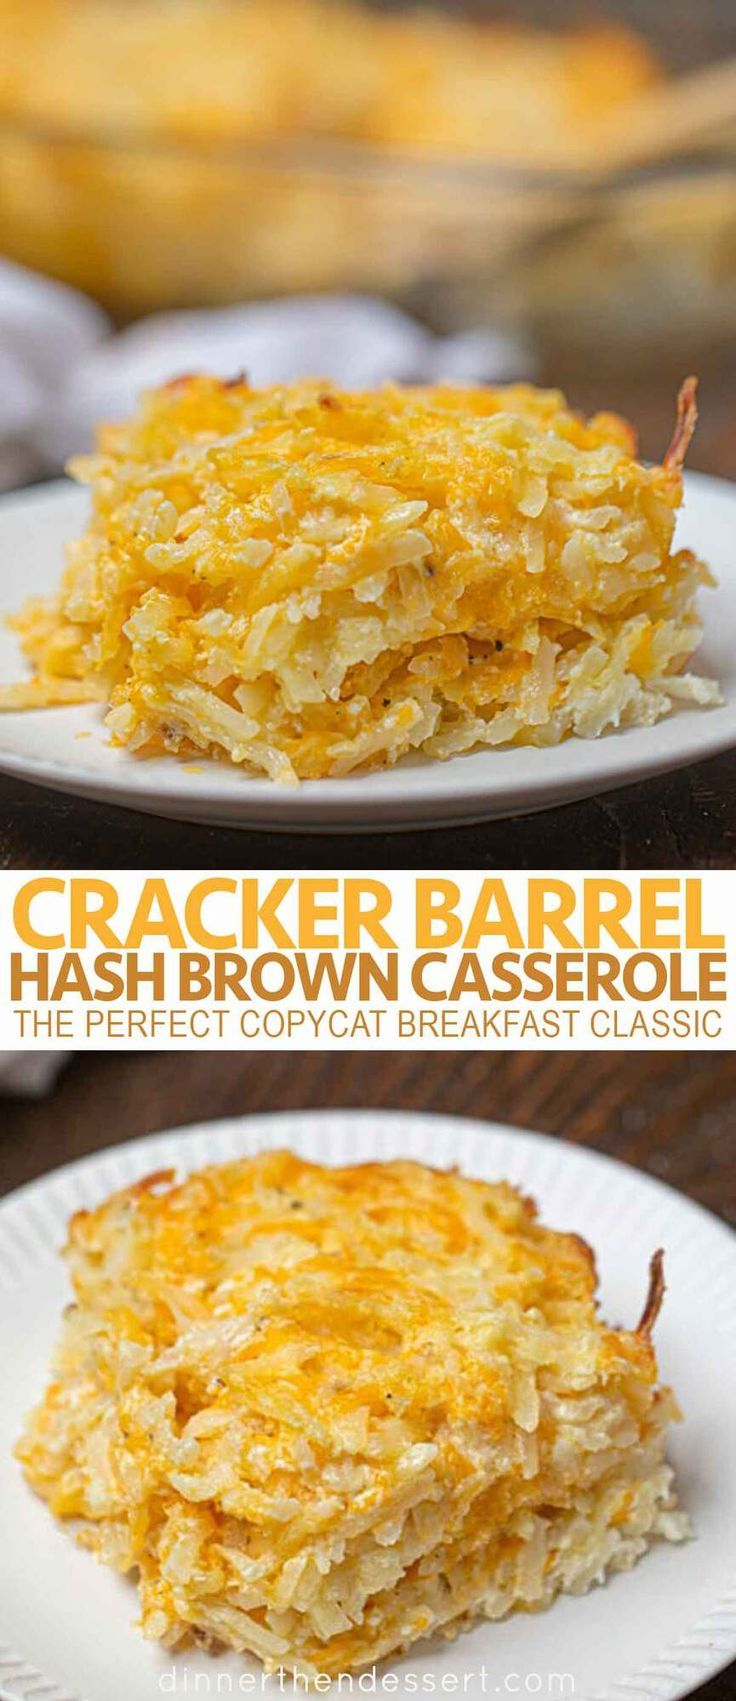 Cracker Barrel Hash Brown Casserole Is The Perfect Copycat Breakfast Classic With Shredded Ha Hashbrown Casserole Recipe Hash Brown Casserole Hashbrown Recipes